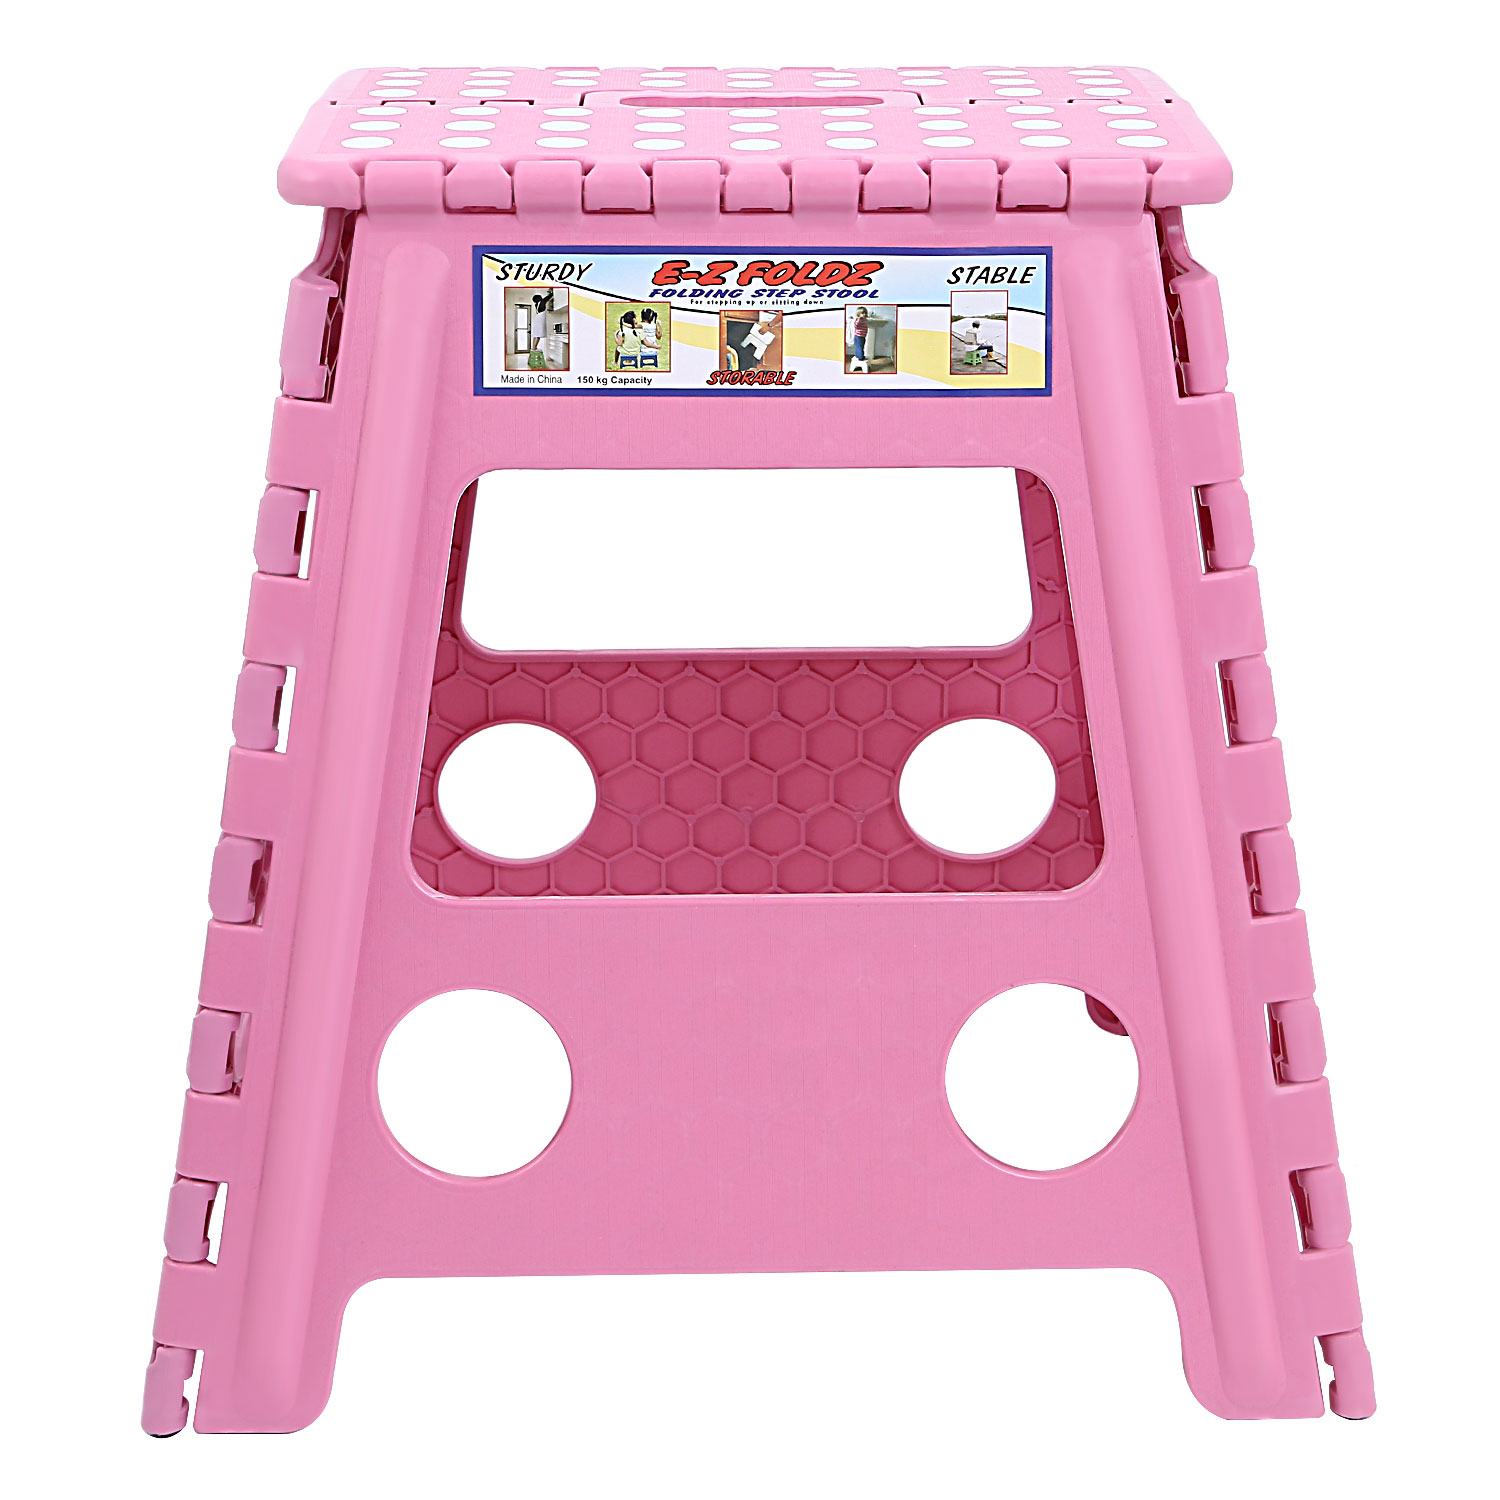 Anti slip folding step stool for toddlers kids bathroom adults kitchen fishing ebay Bathroom step stool for kids